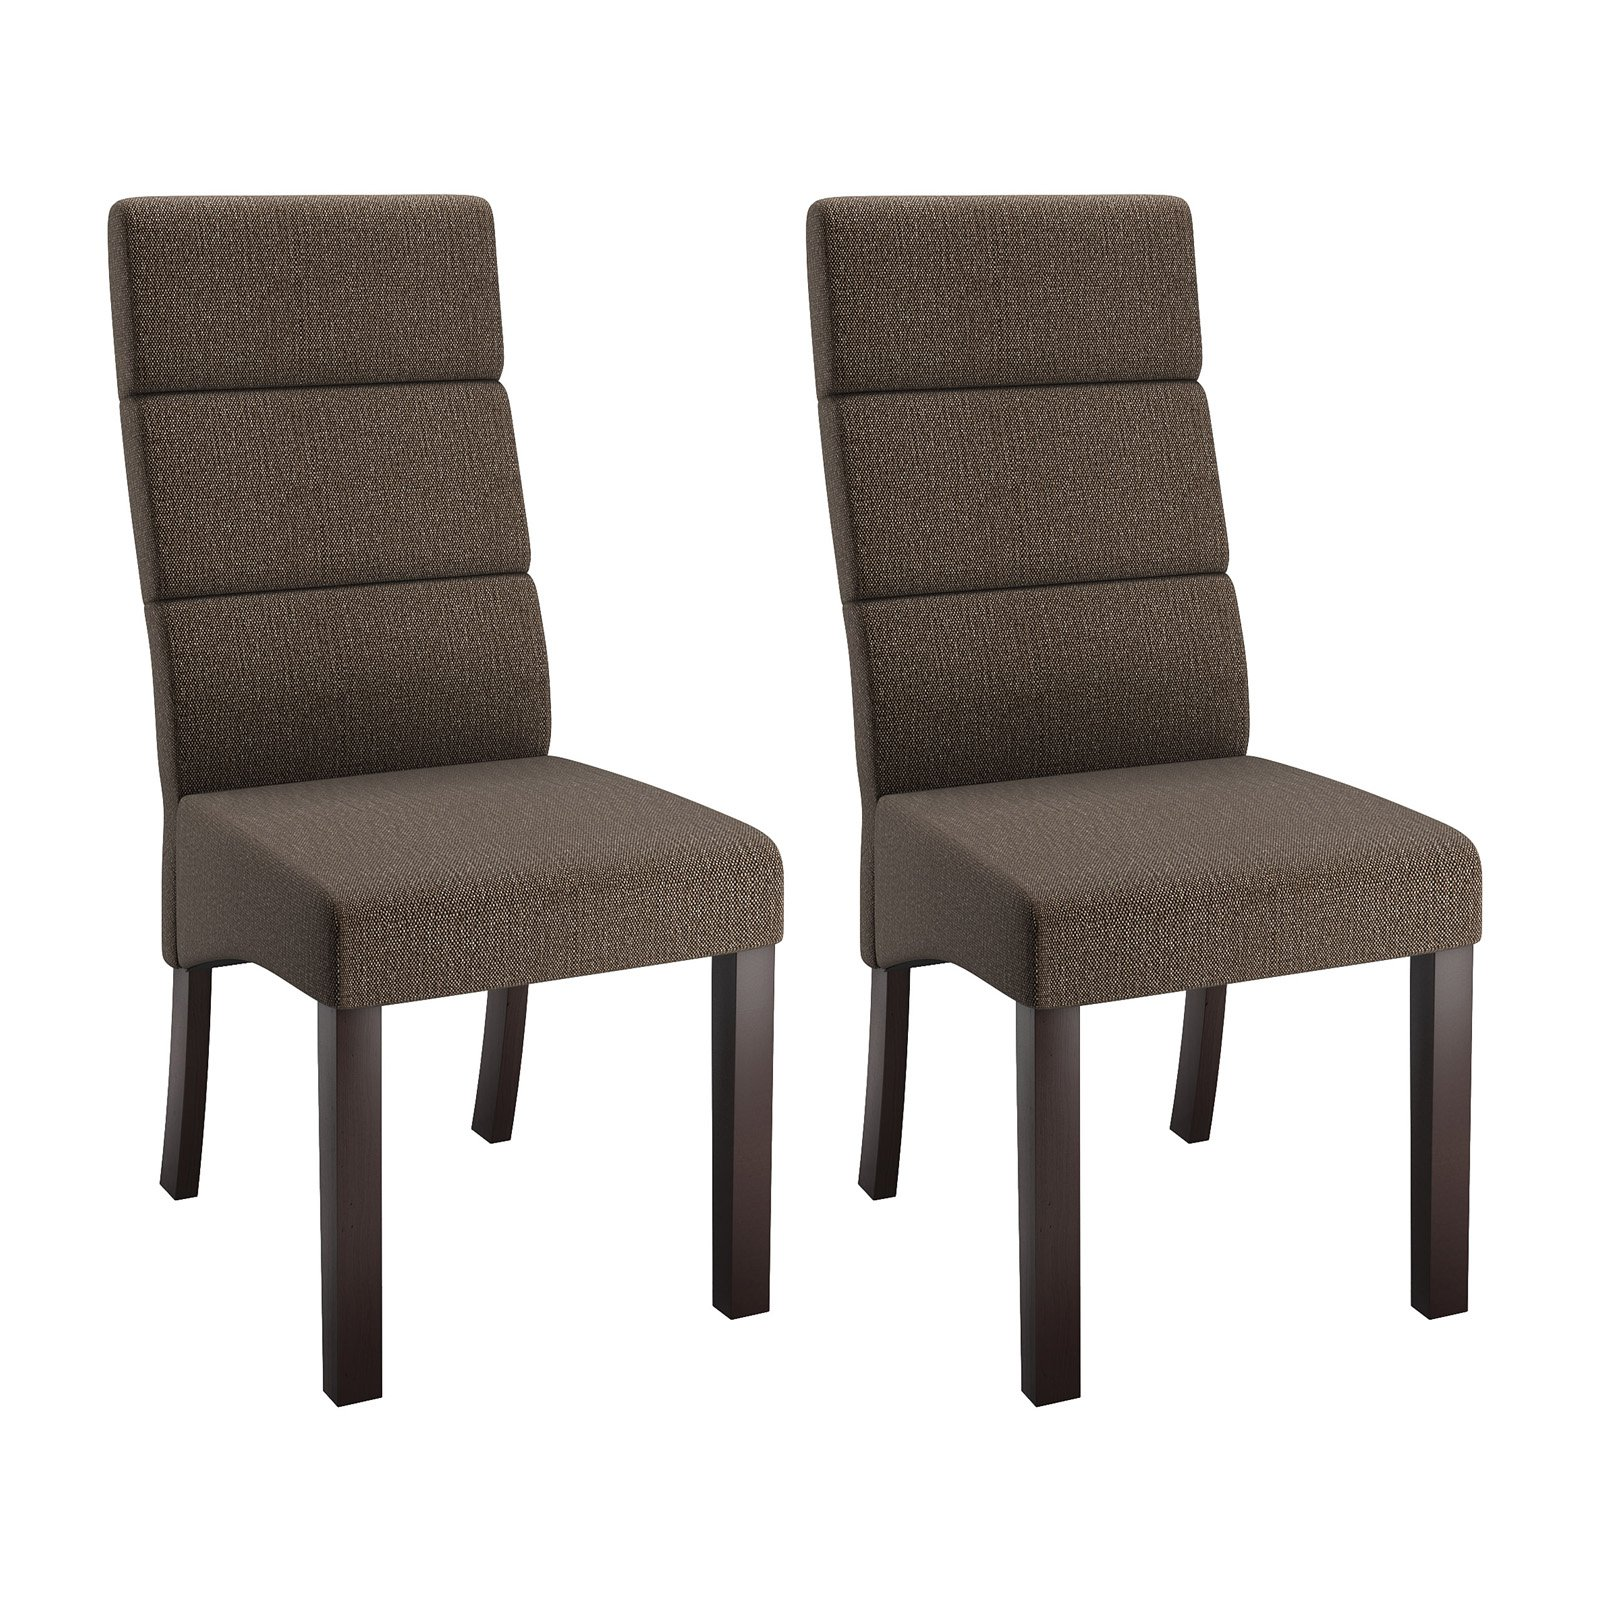 CorLiving Antonio Tall Back Upholstered Dining Chairs, Set ...